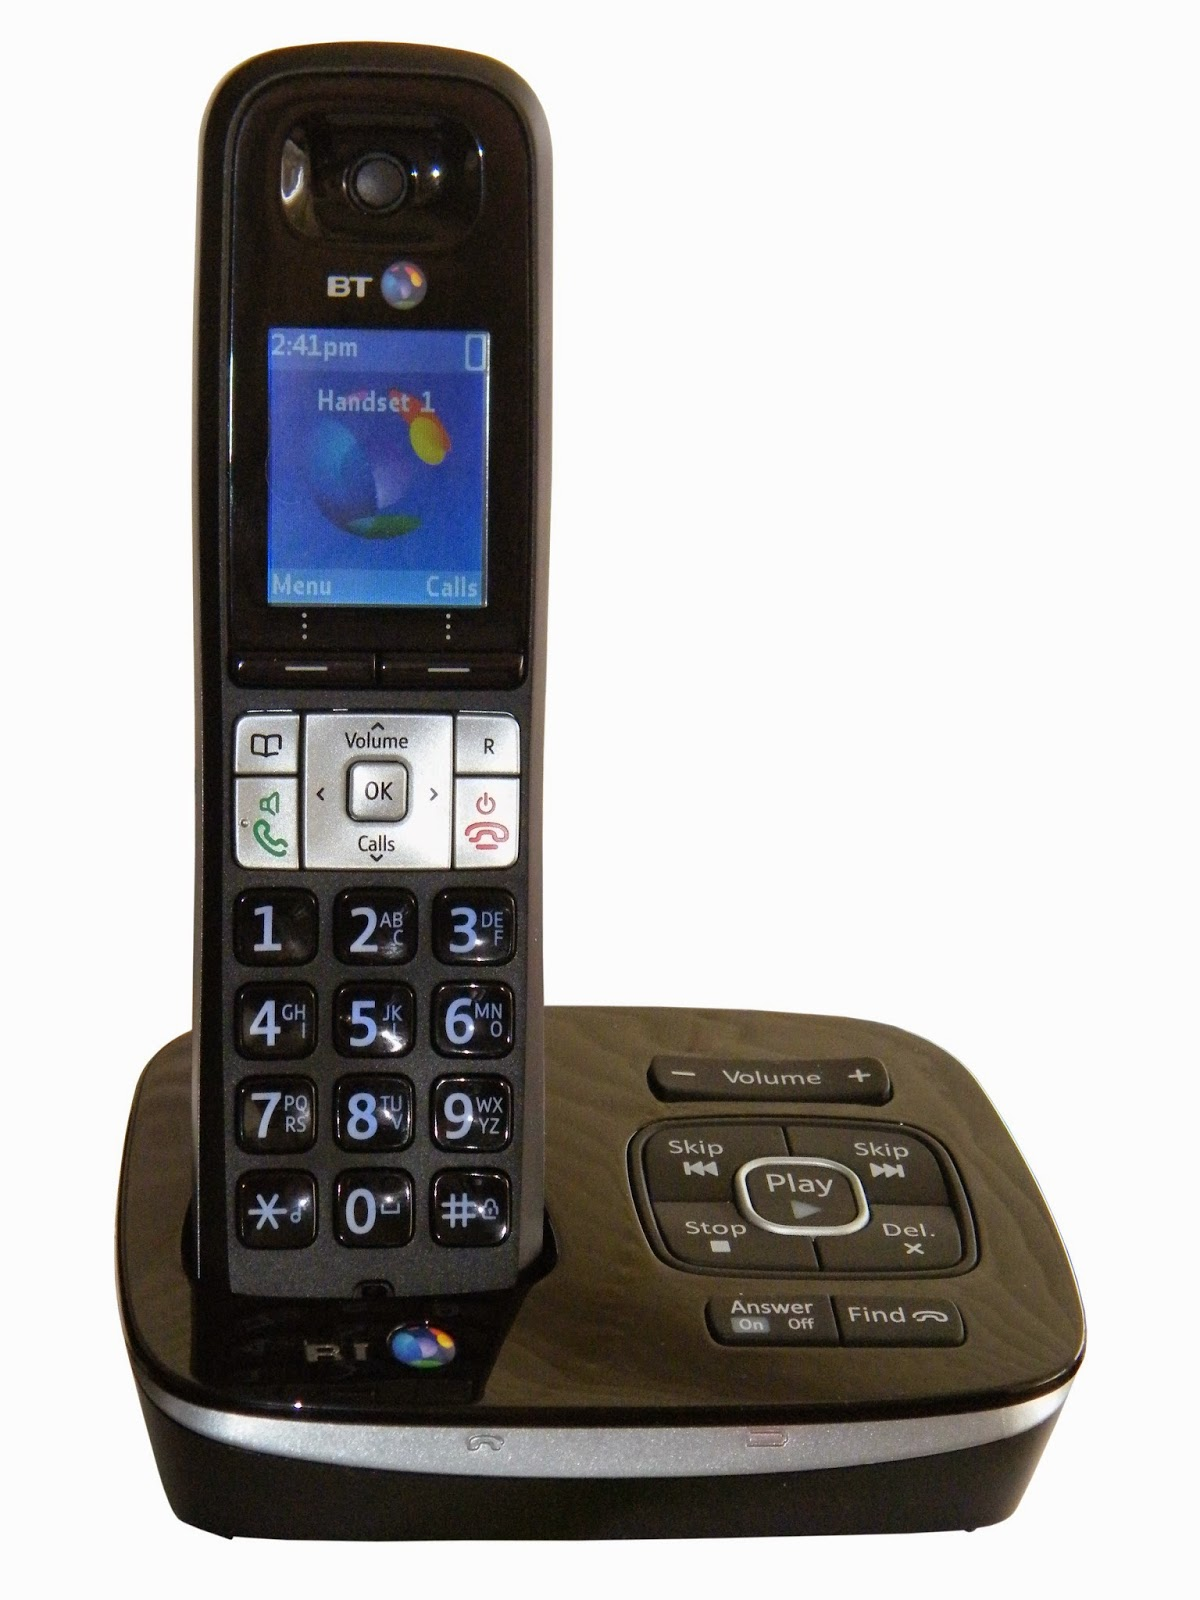 5913386aaf2 Watch my review video of this superb digital cordless phone that saved me  from having to talk to 3 or 4 nuisance callers every day.